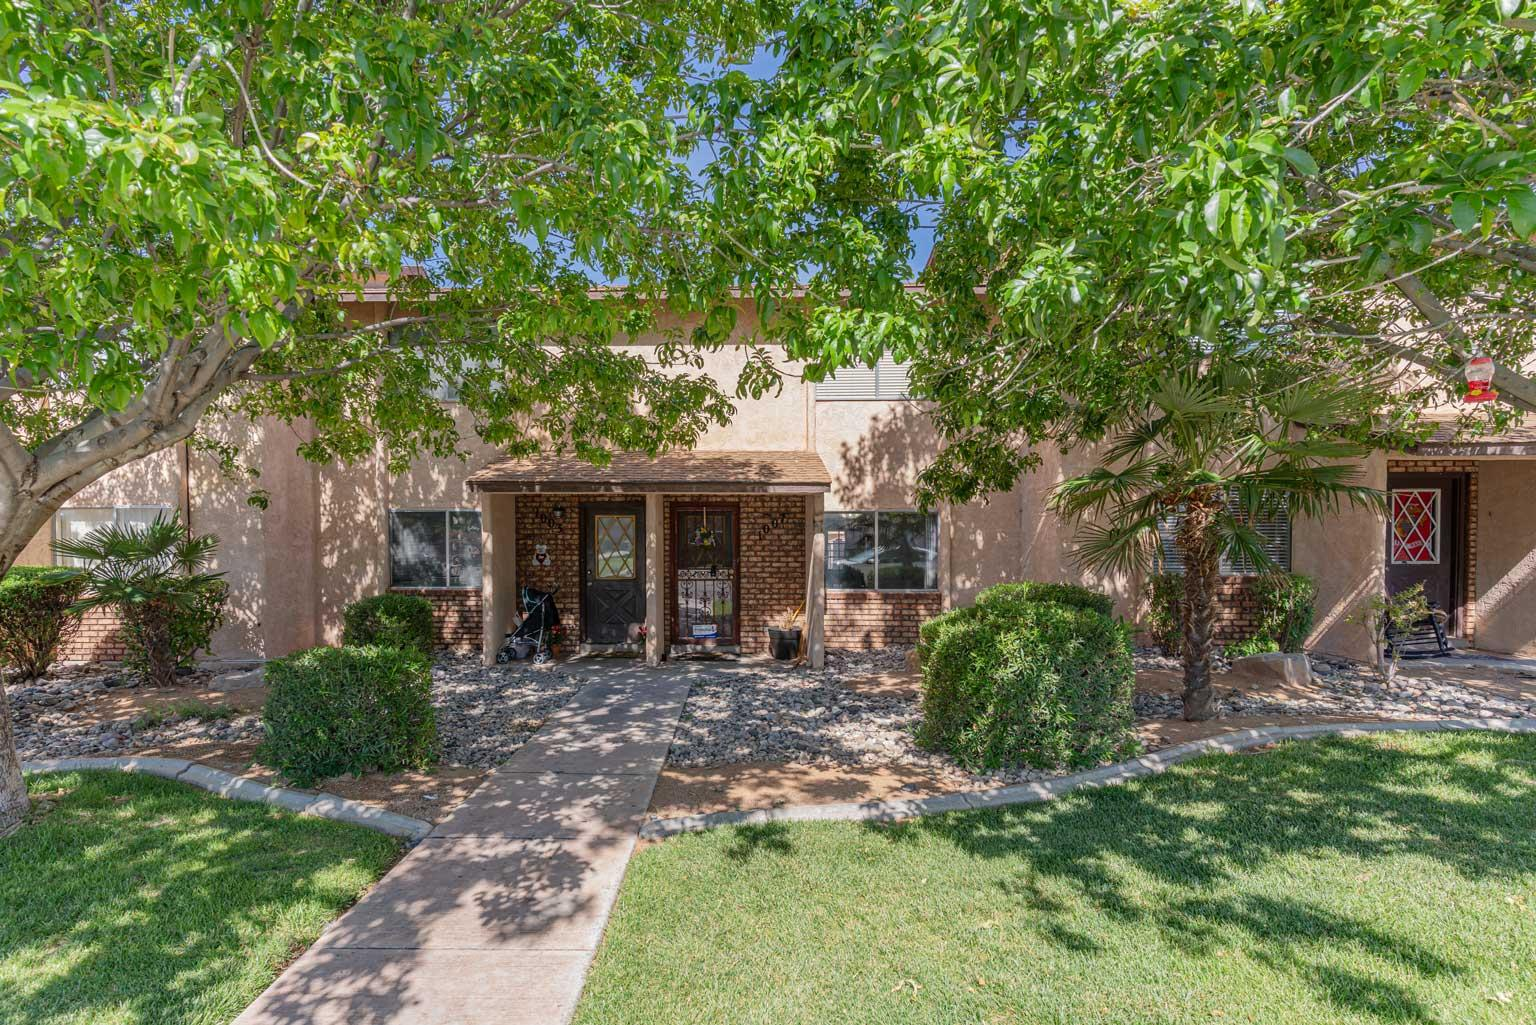 1007 N 1725 W Unit 68, St George Ut 84770